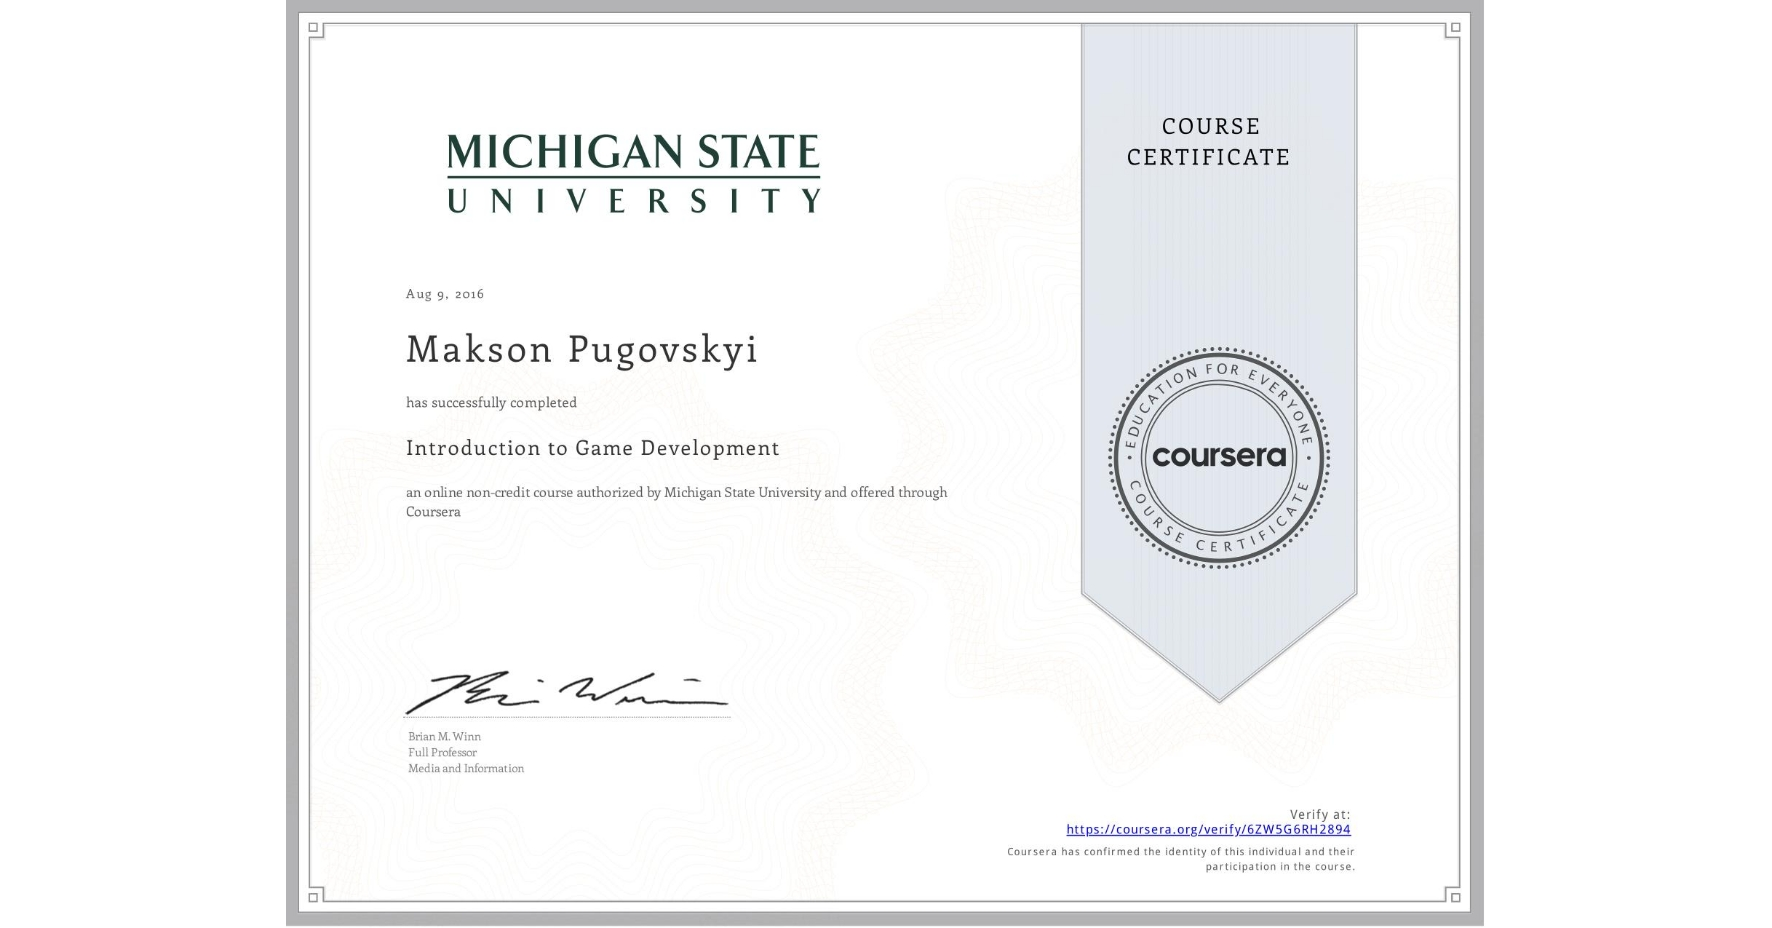 View certificate for Makson Pugovskyi, Introduction to Game Development, an online non-credit course authorized by Michigan State University and offered through Coursera